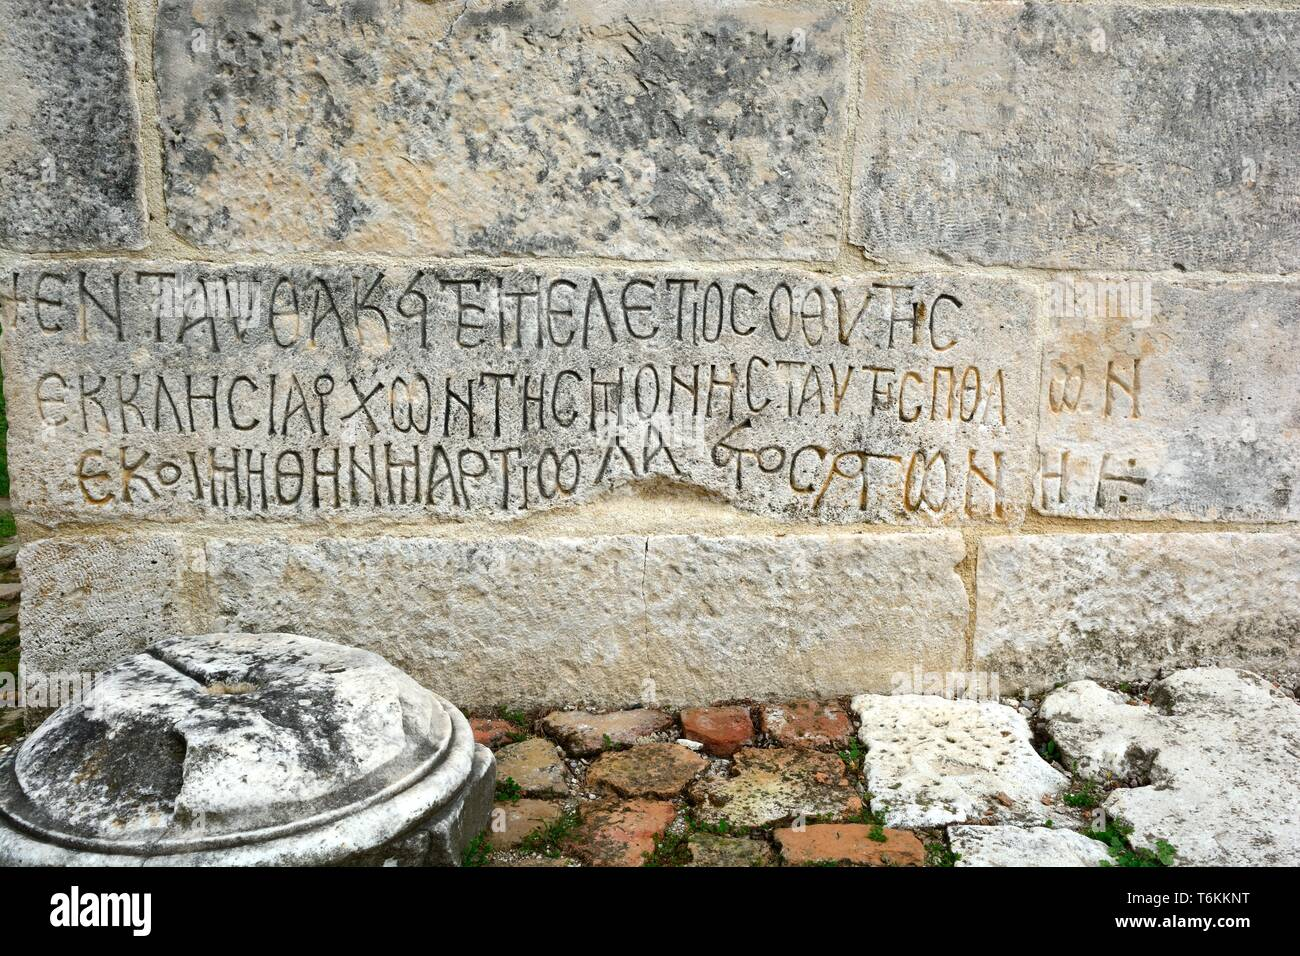 Ancient Greek script on a wall of the ruined Greek city of Apollonia Albania - Stock Image